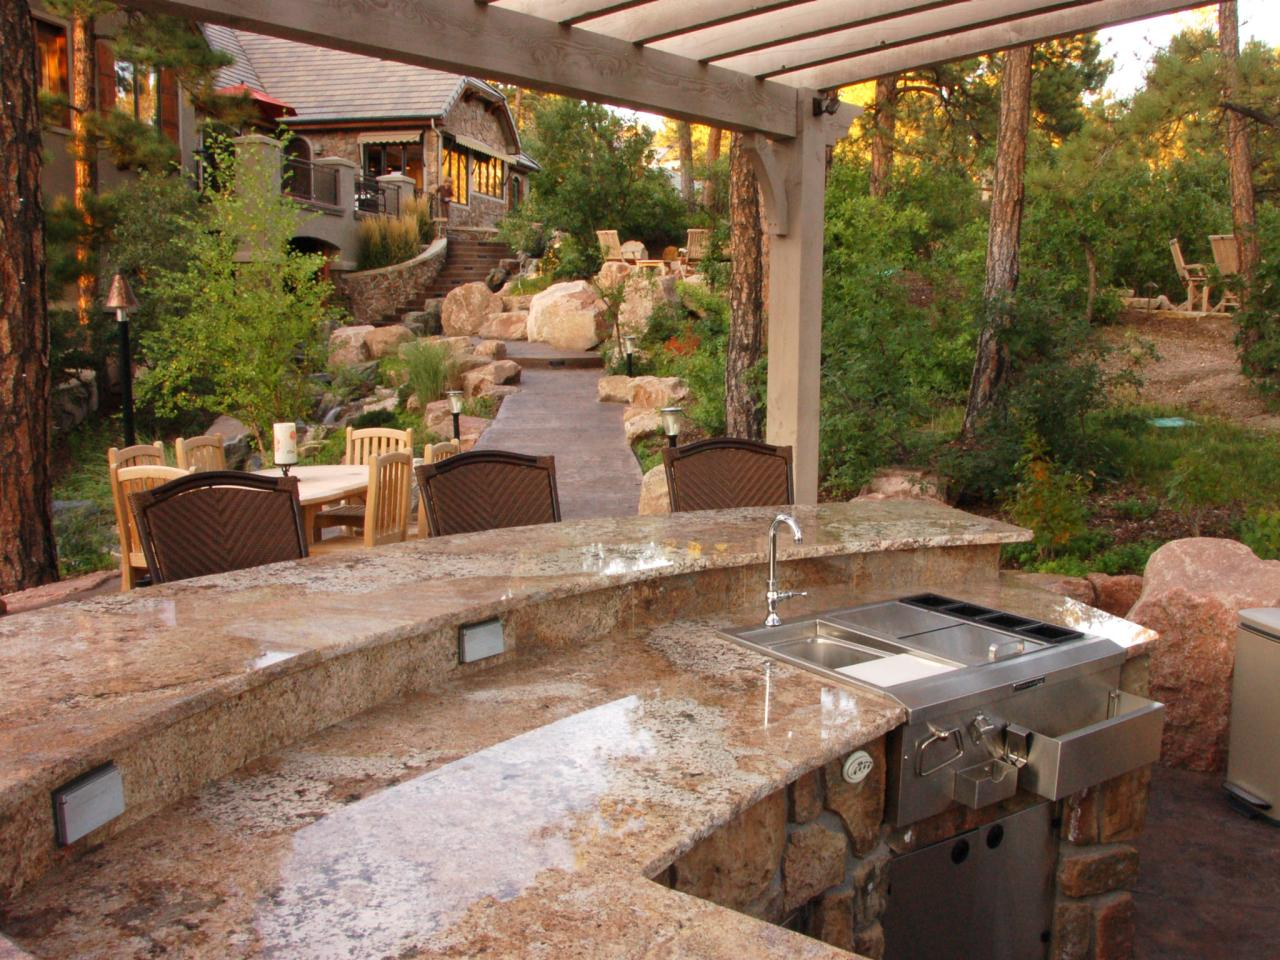 Appealing Outdoor Kitchen Plans With Stone Counter And Glossy Sink Under  Oak Pergola